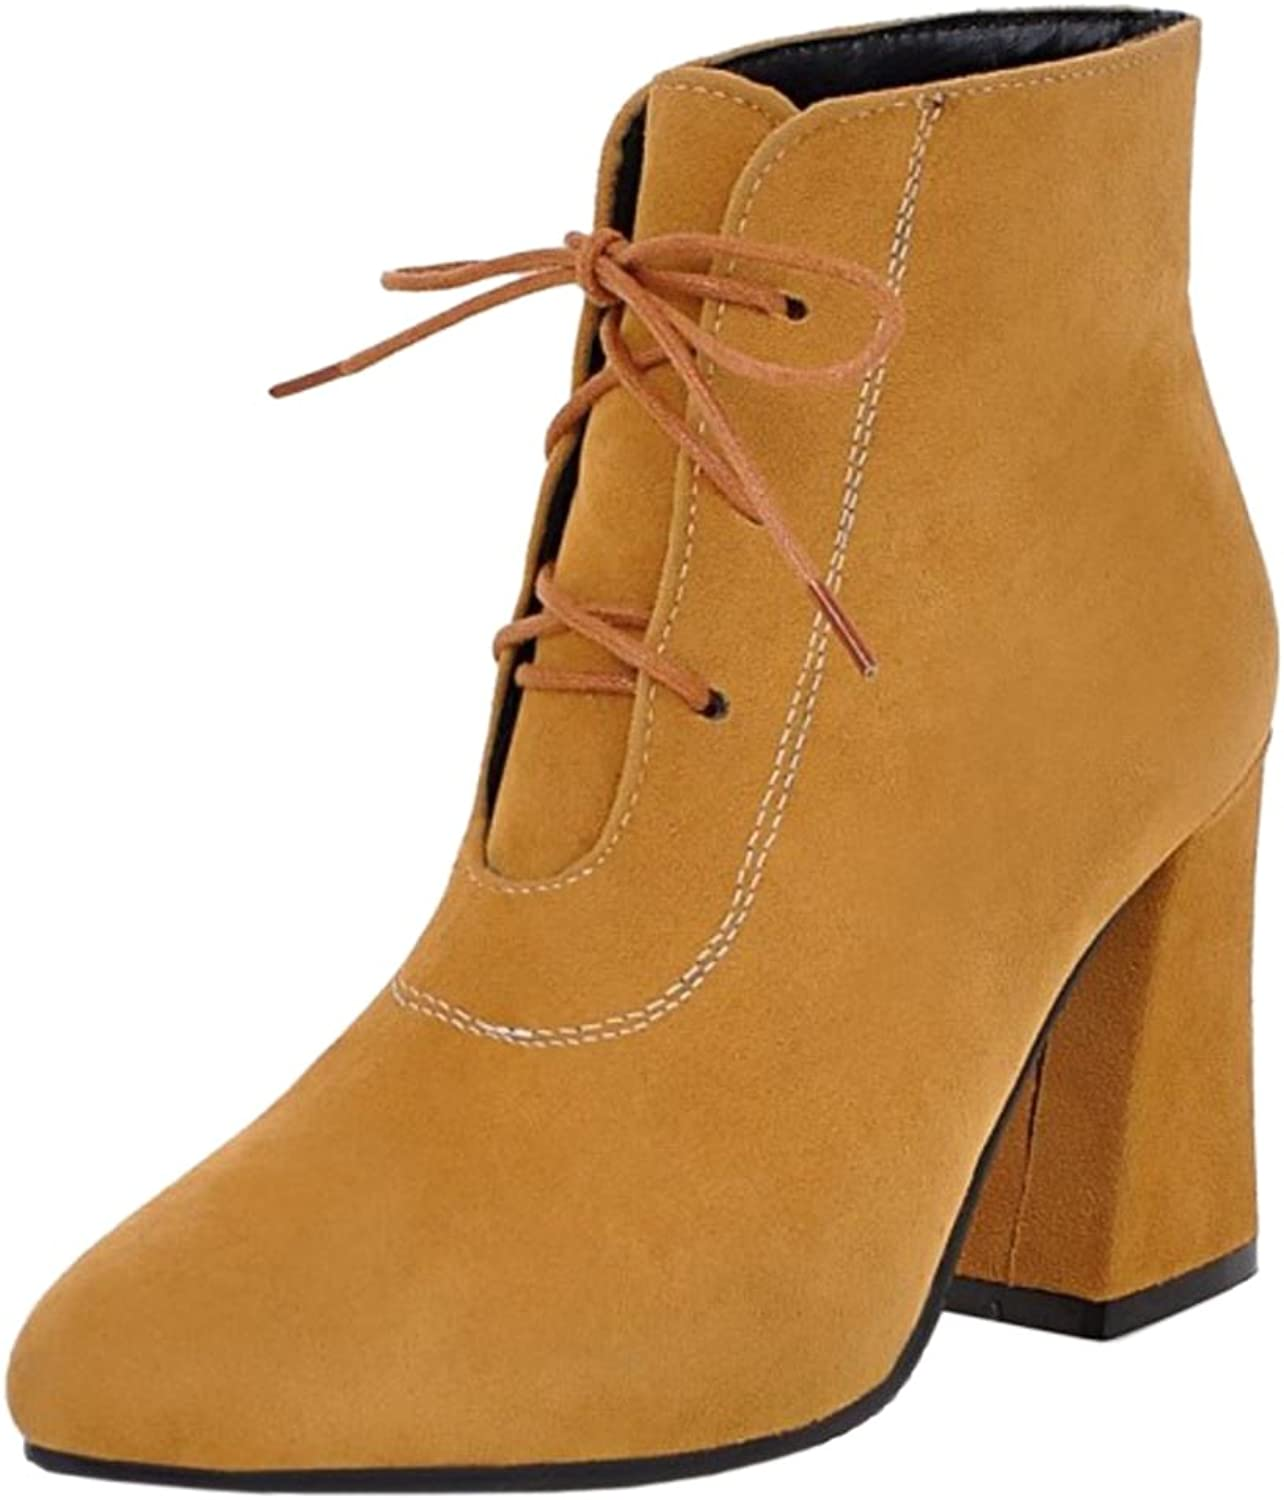 RizaBina Women Western Chunky High Heel Lace Up Ankle Boots Summer Booties